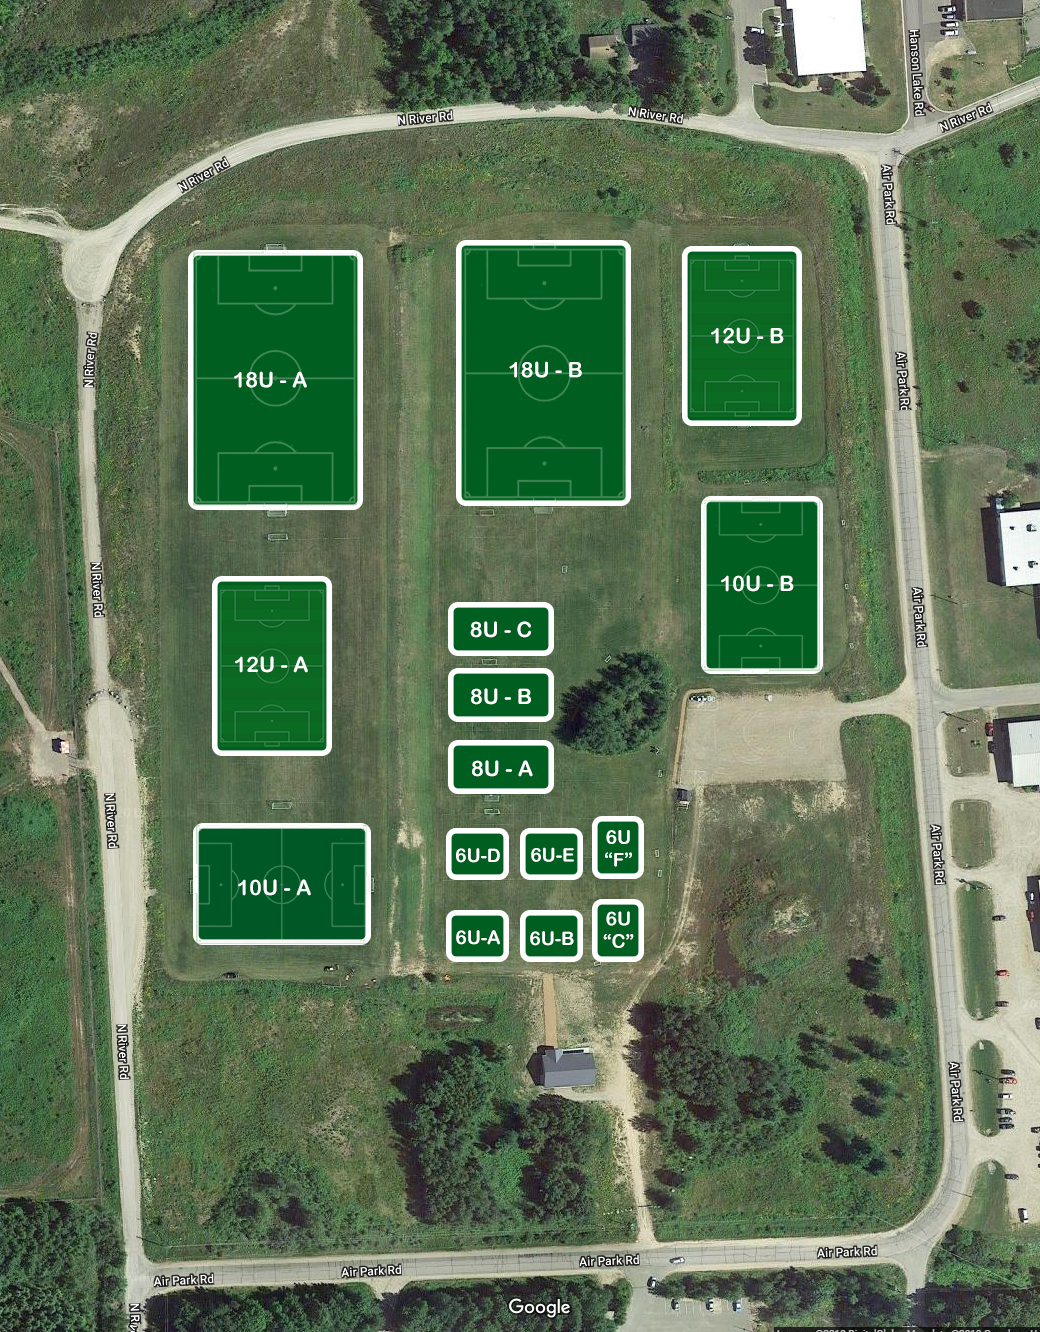 2019 Soccer Field Layout Map